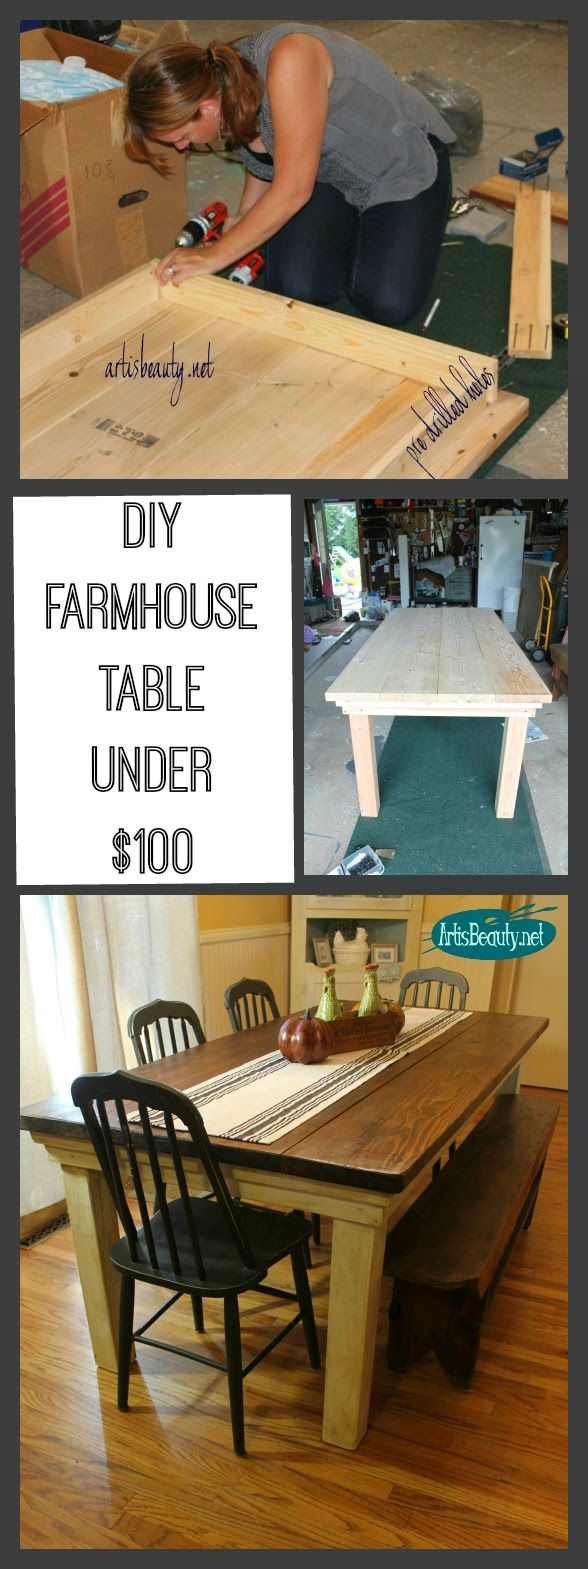 ART IS BEAUTY: How to build your own FarmHouse Table for under $100. I want to make one for the deck too!